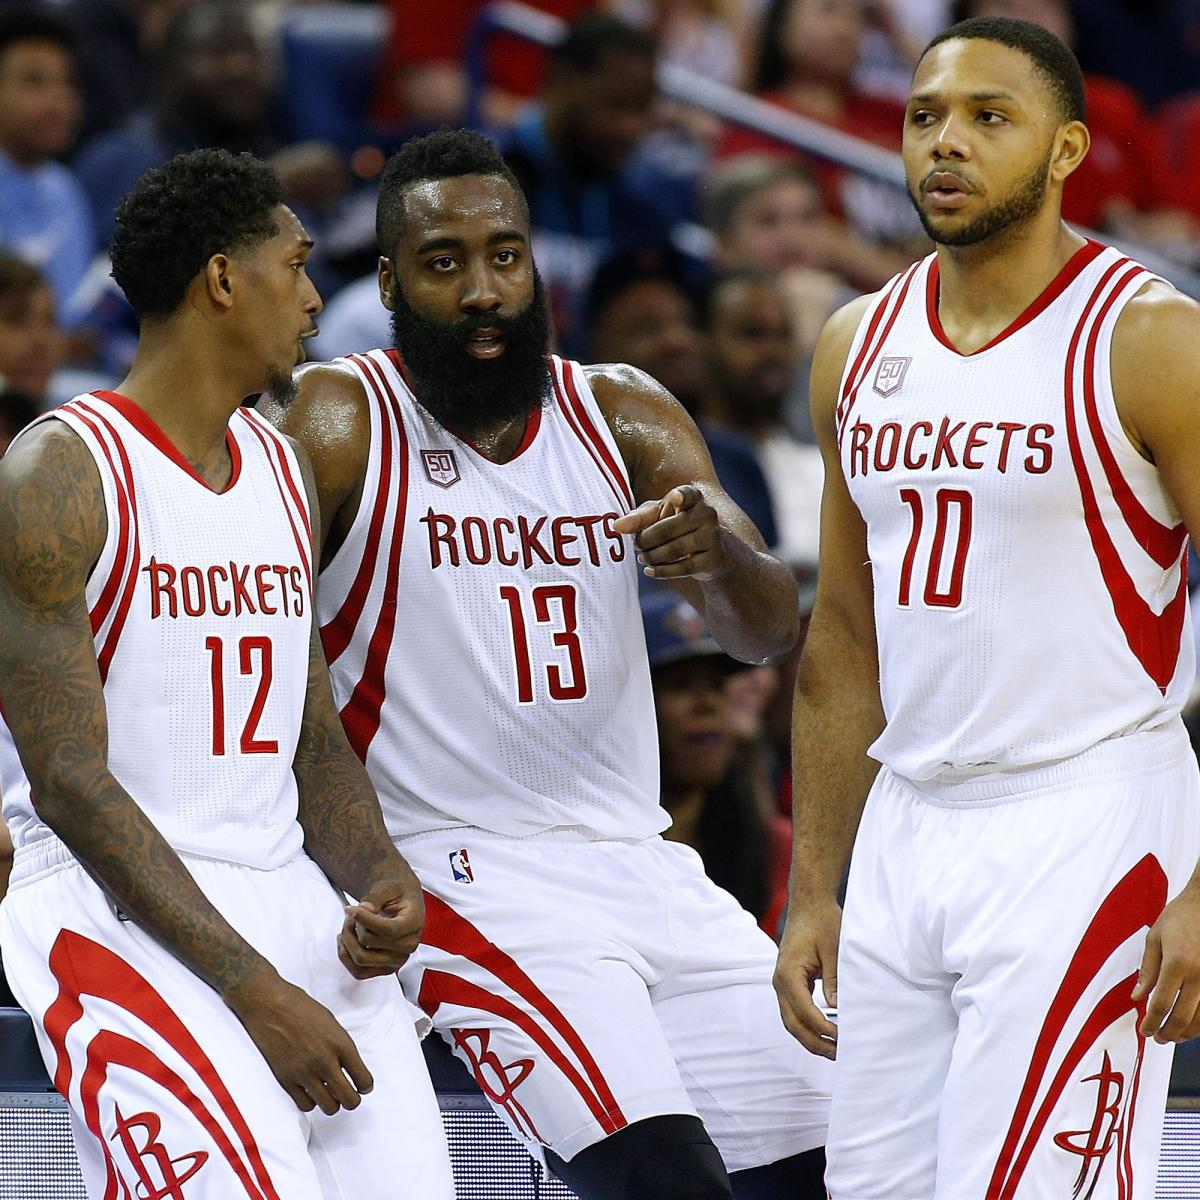 Houston Rockets Game Log: Houston Rockets Post Franchise-Record 48th Consecutive